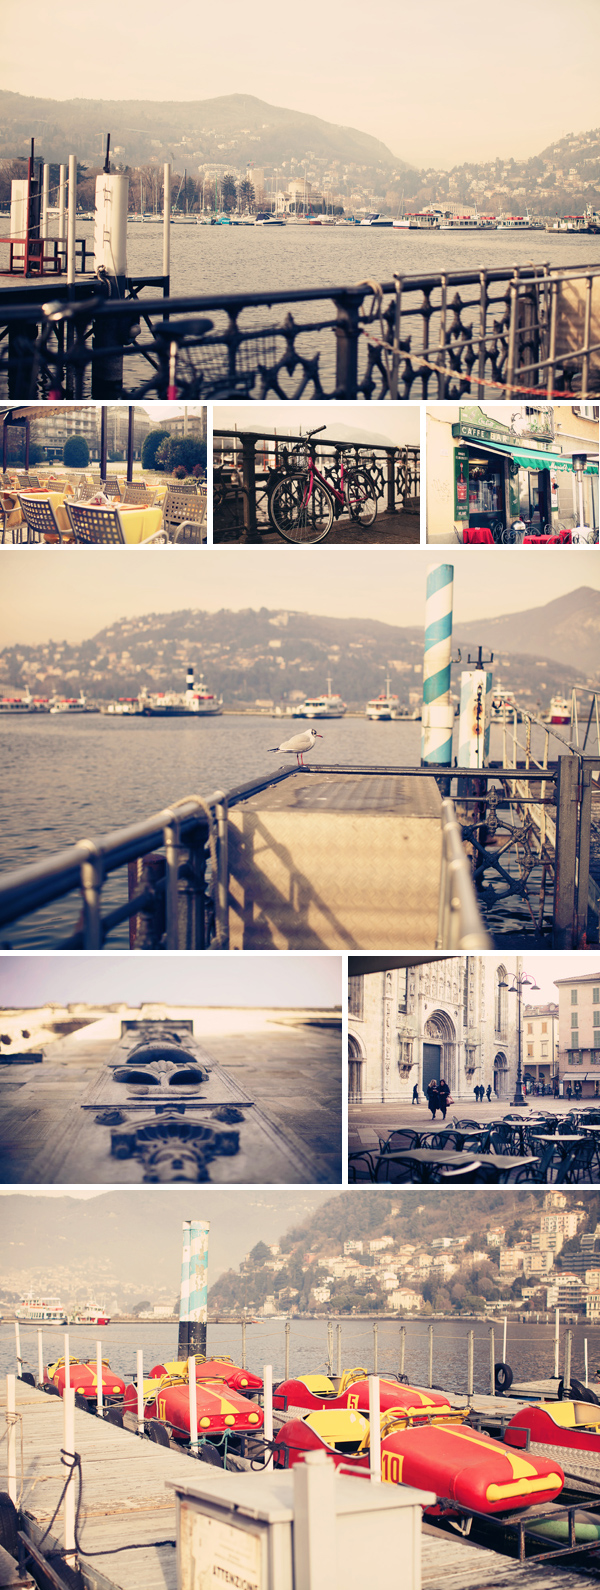 COMO IN WINTER